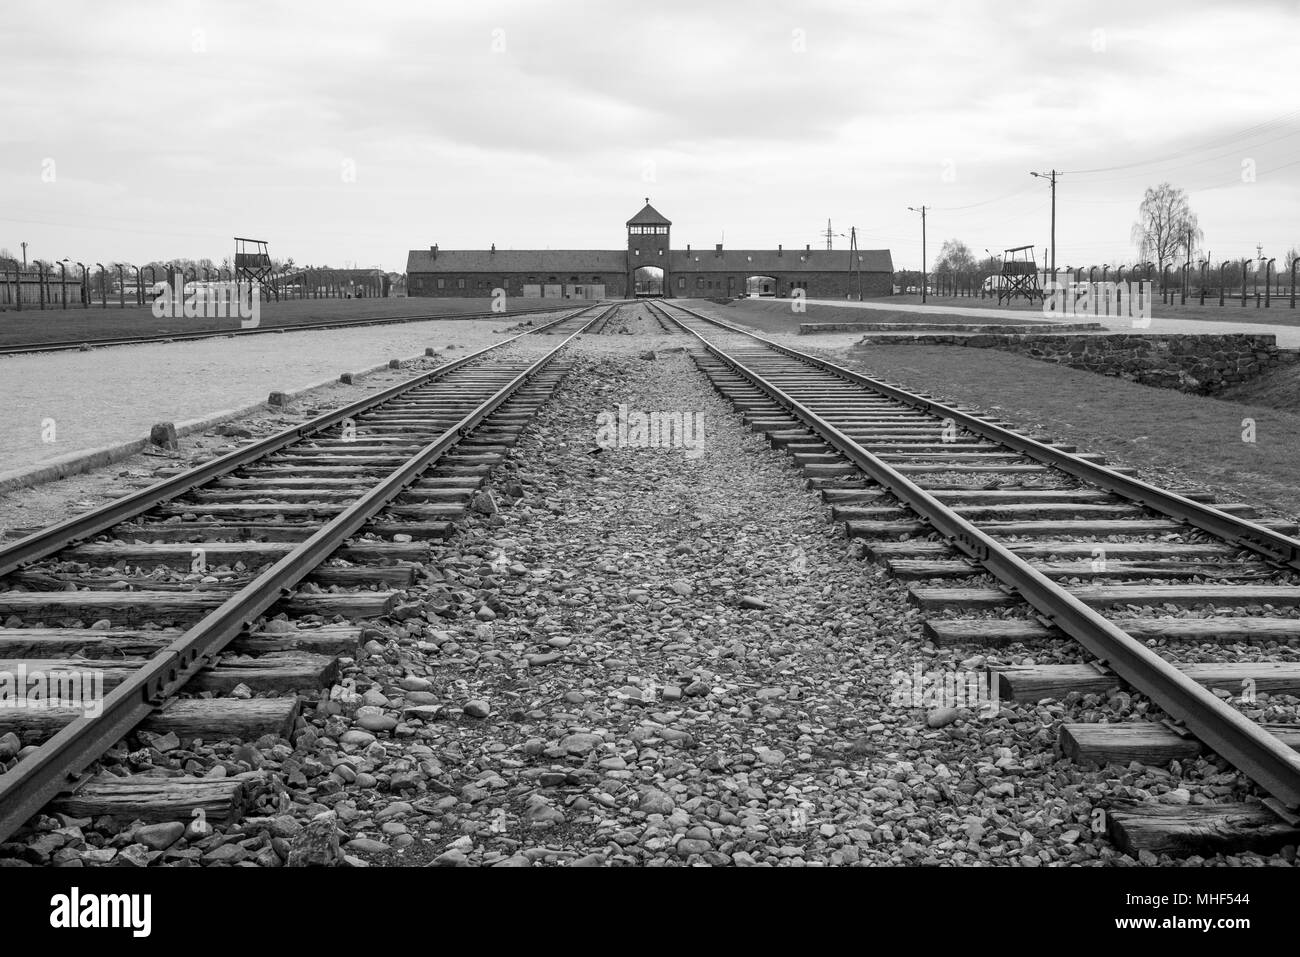 Entrance to Auschwitz Birkenau (Poland) Nazi Concentration Camp showing train tracks used to bring Jews and other minority groups to the gas chambers. - Stock Image